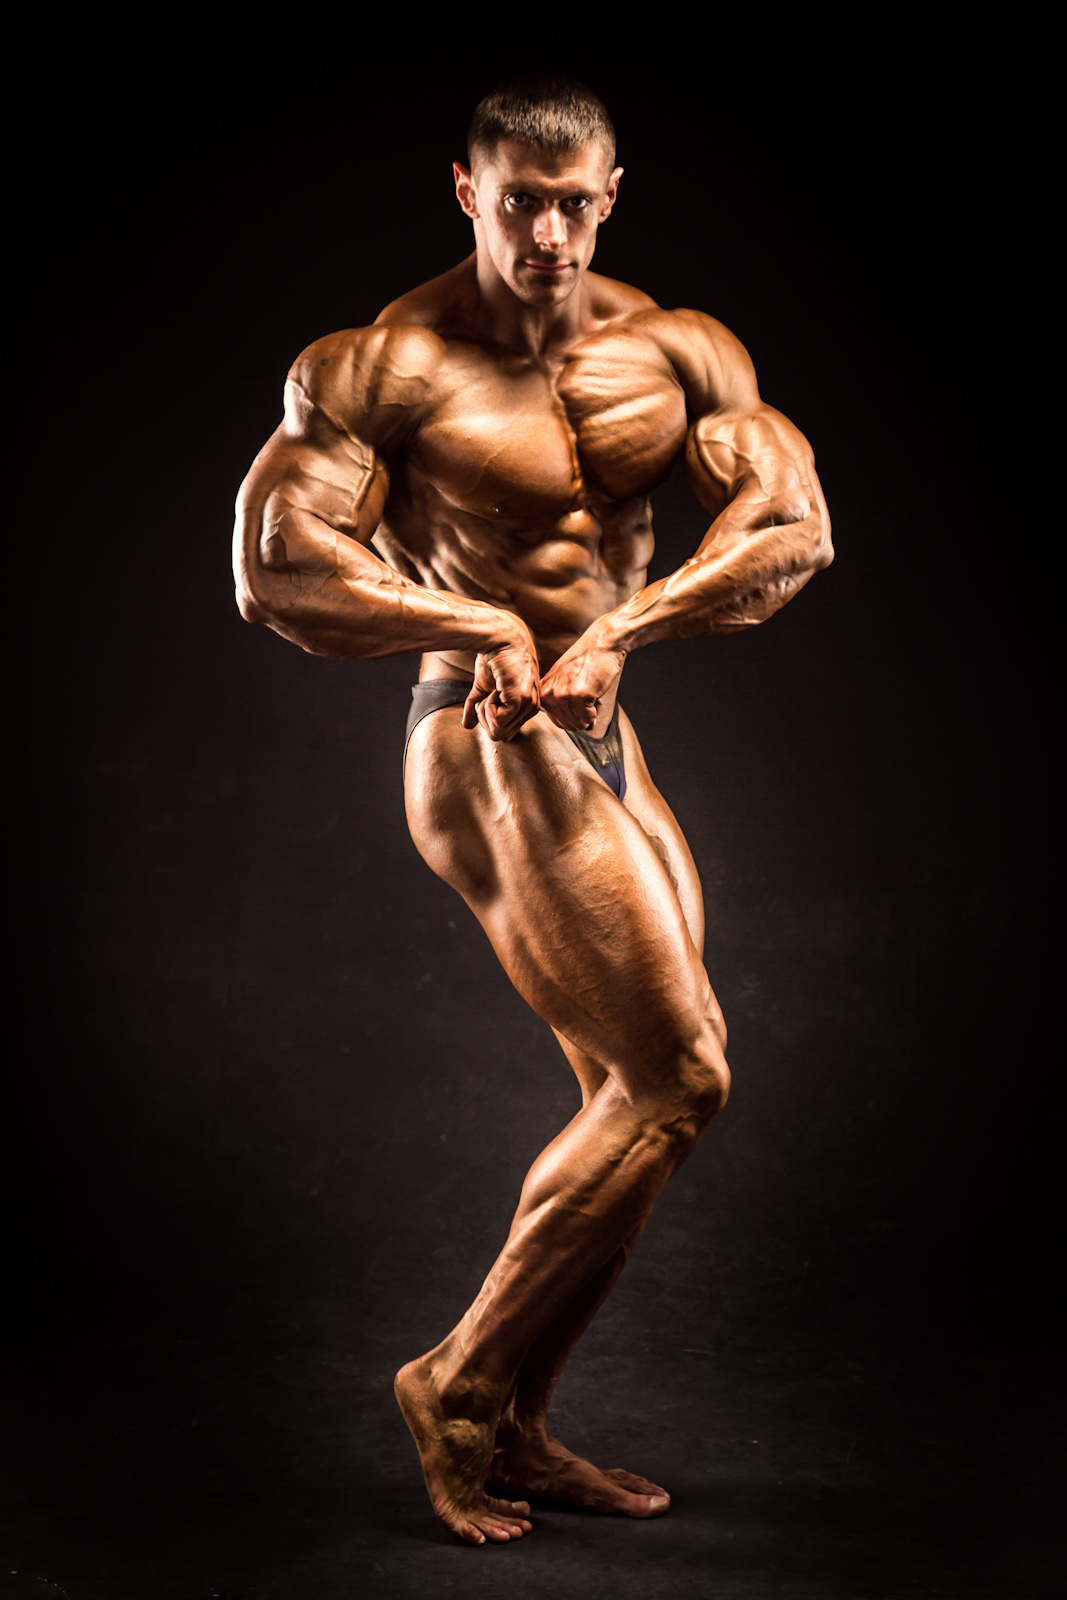 Posing might seem like an odd thing to do, but it helps a bodybuilder show off specific muscle groups